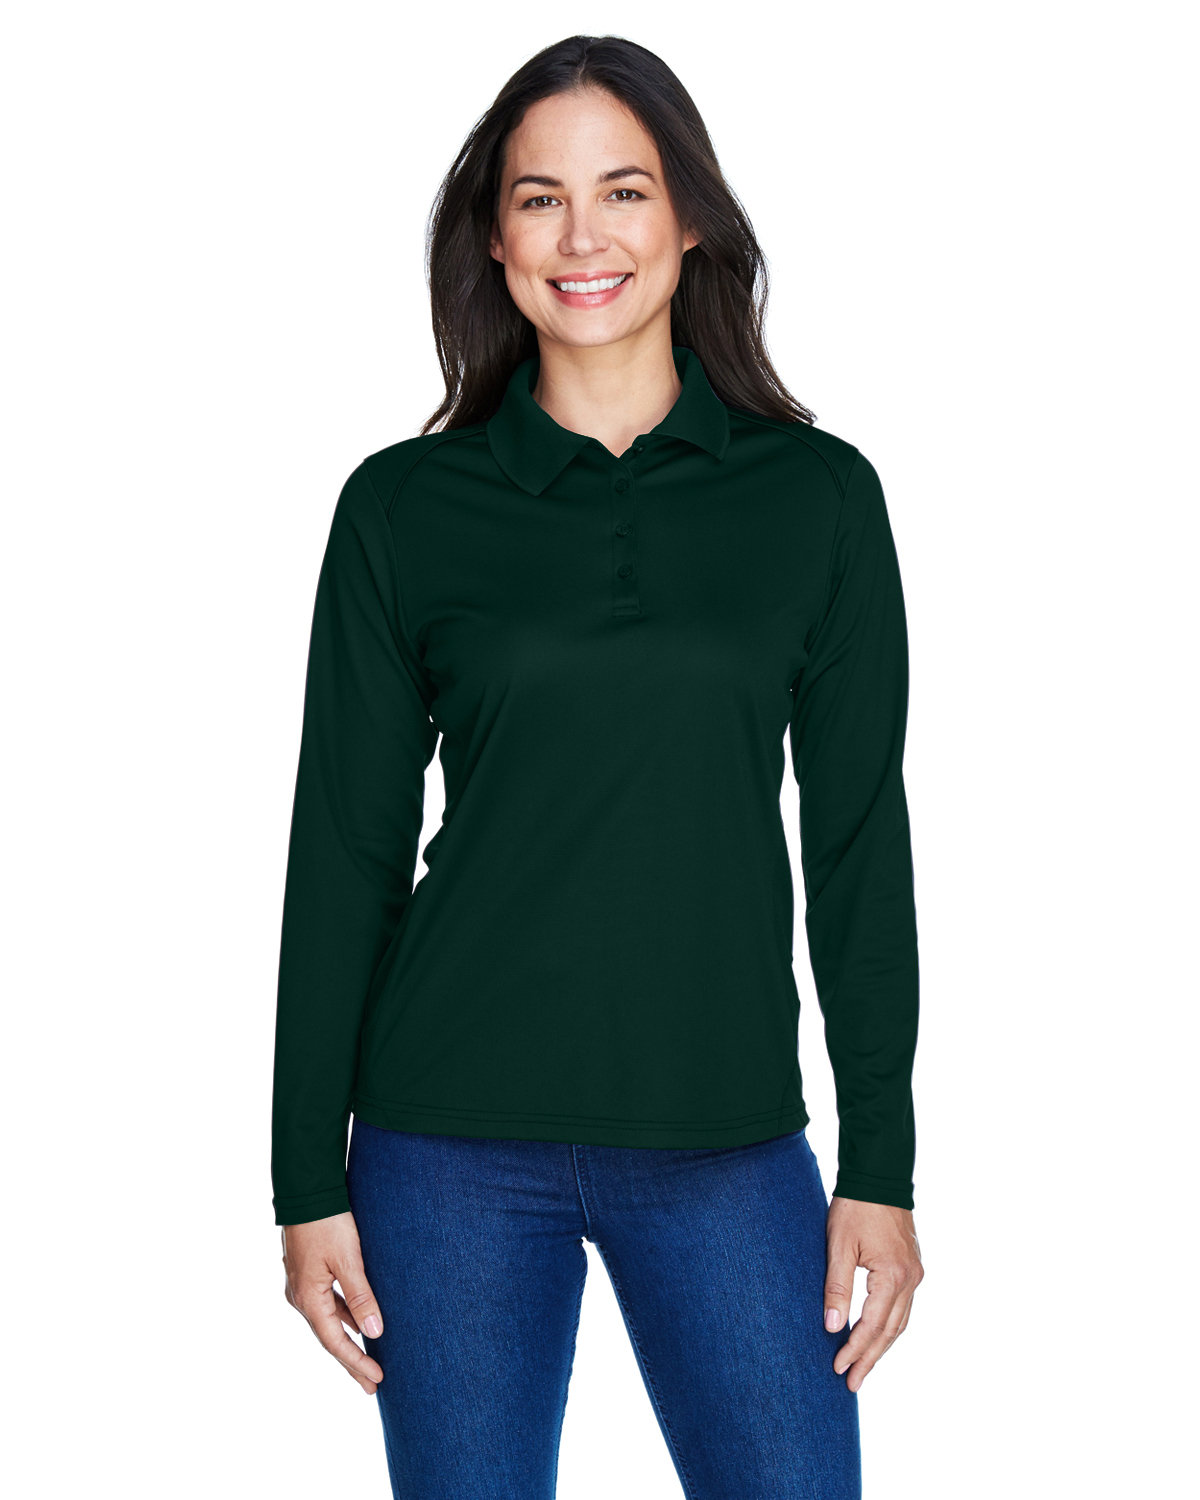 Extreme Ladies' Eperformance™ Snag Protection Long-Sleeve Polo FOREST